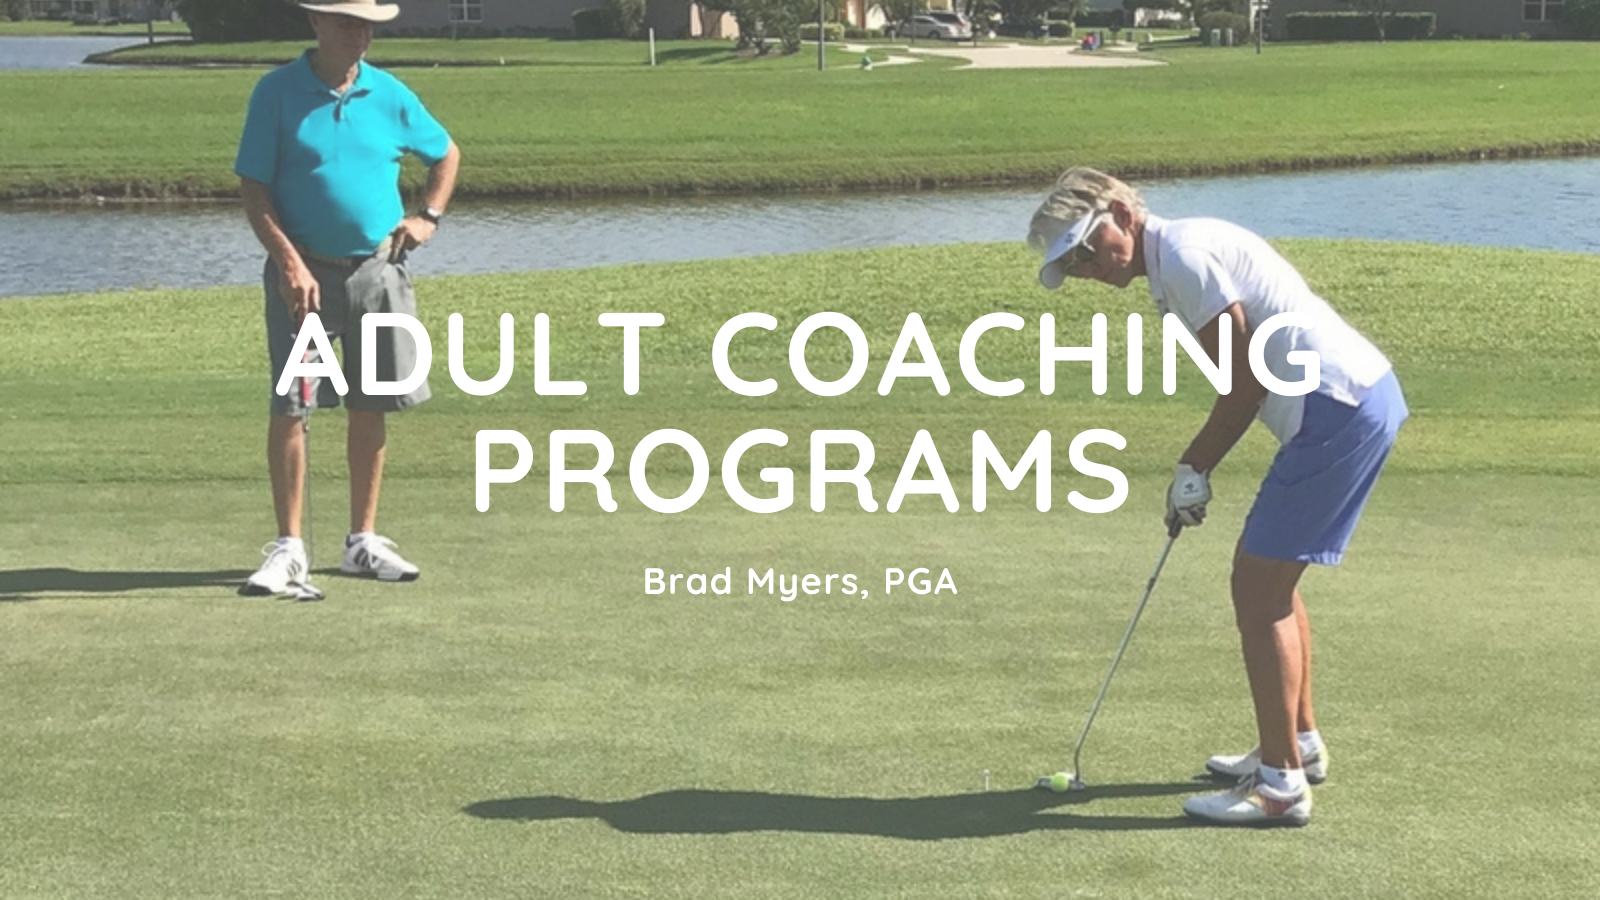 Adult Coaching Programs For Golf